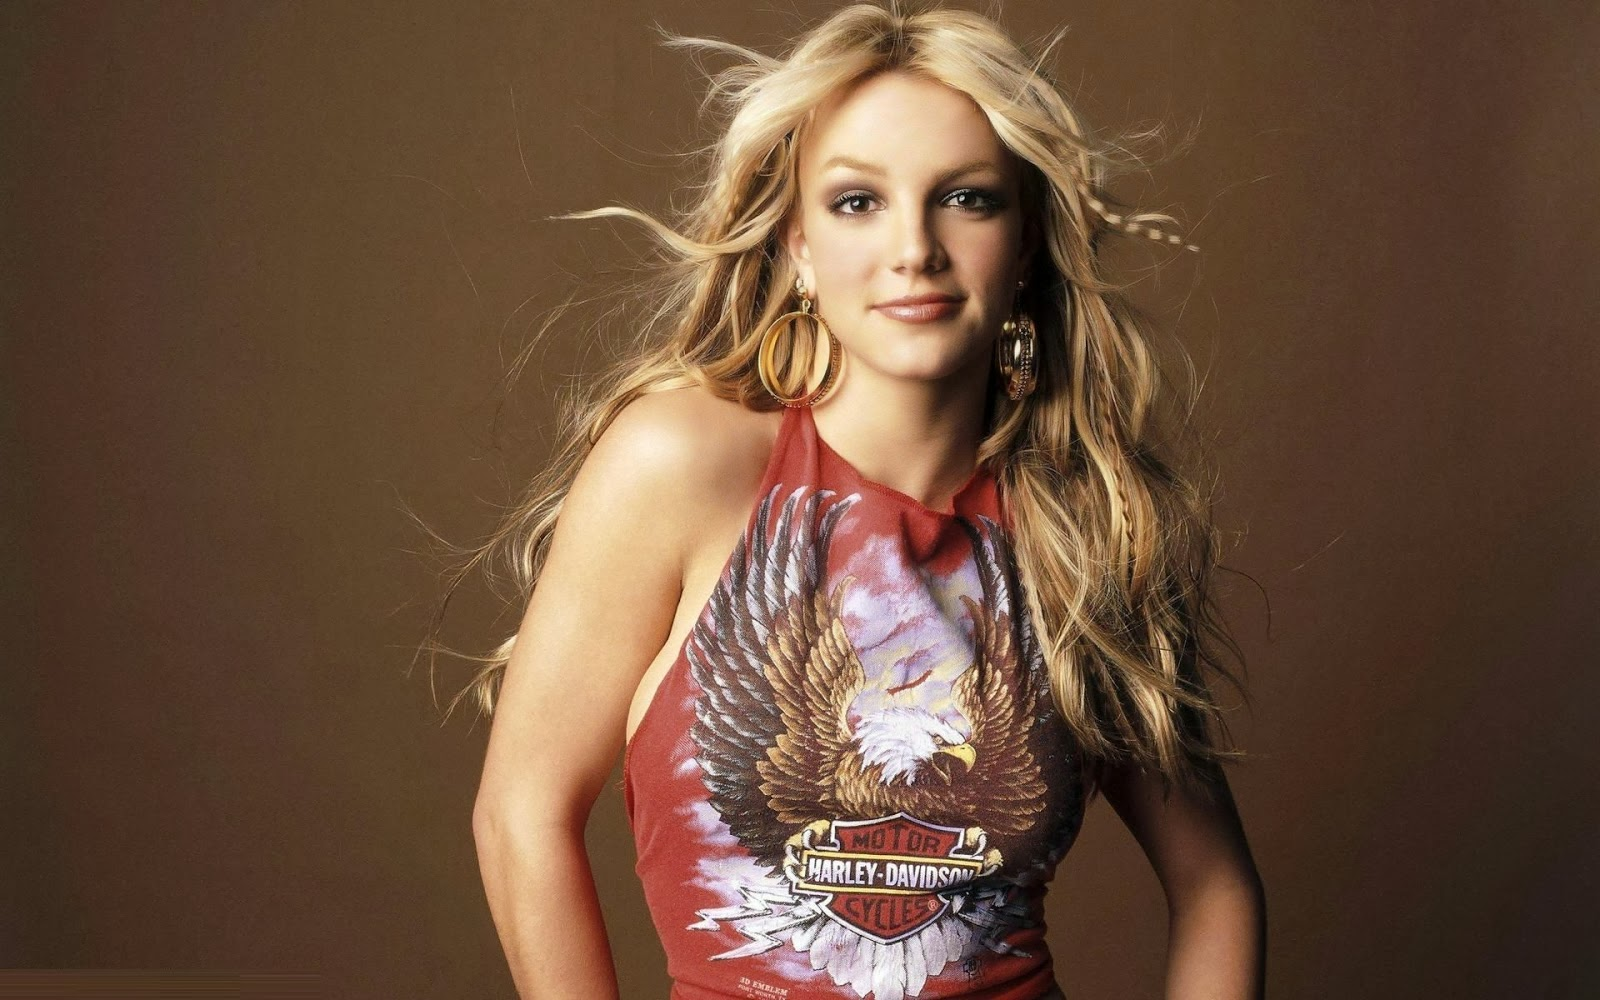 Beautiful Actress And Model Britney Spears Hd Unseen Wallpapers and Photos